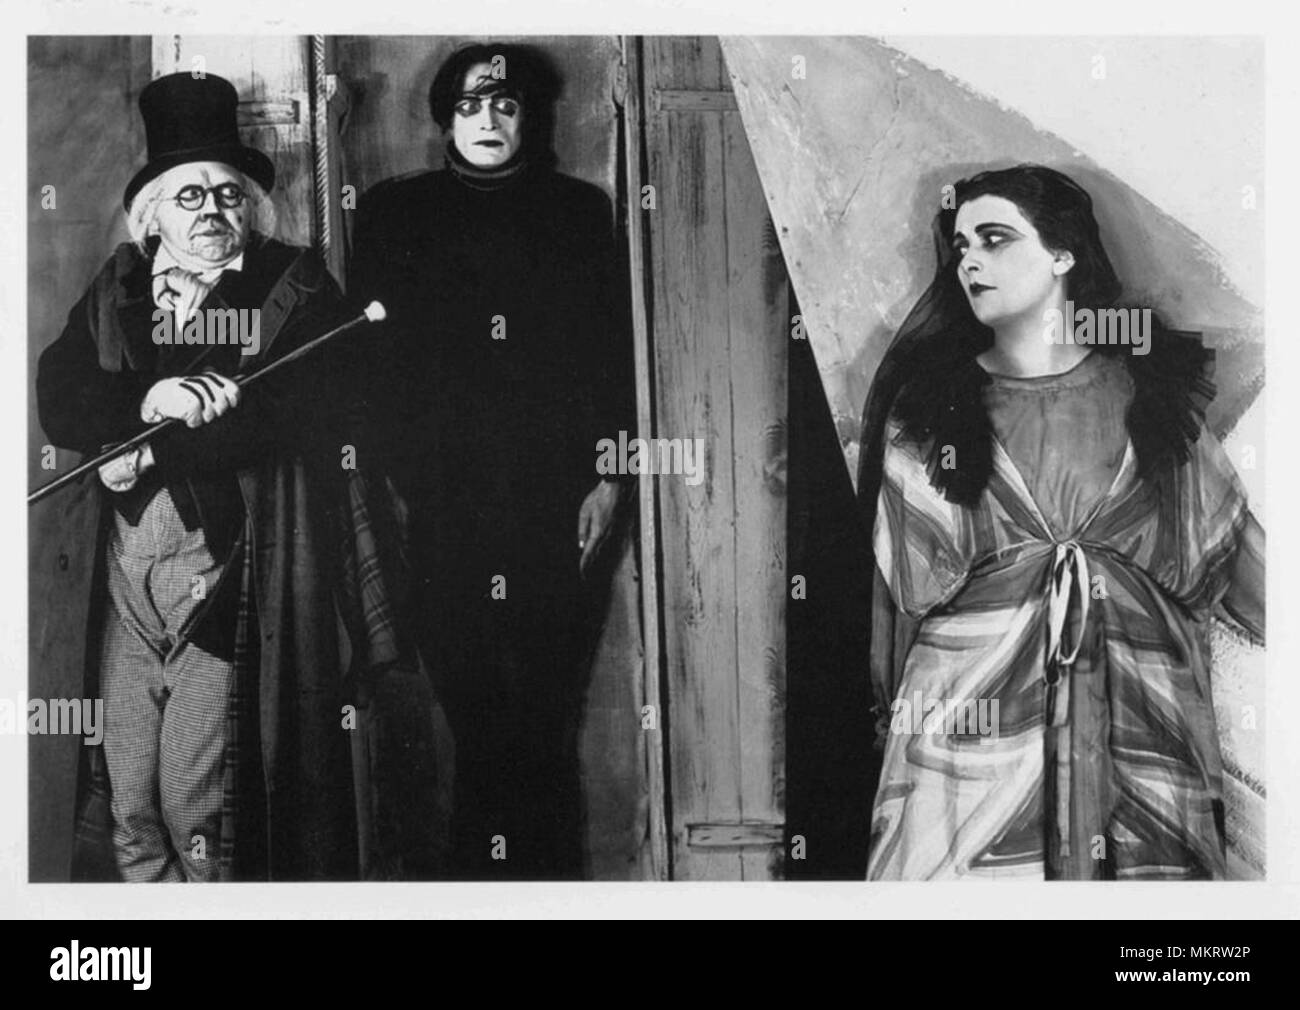 screenshot from a classic silent horror movie from the german expressionist era - Stock Image